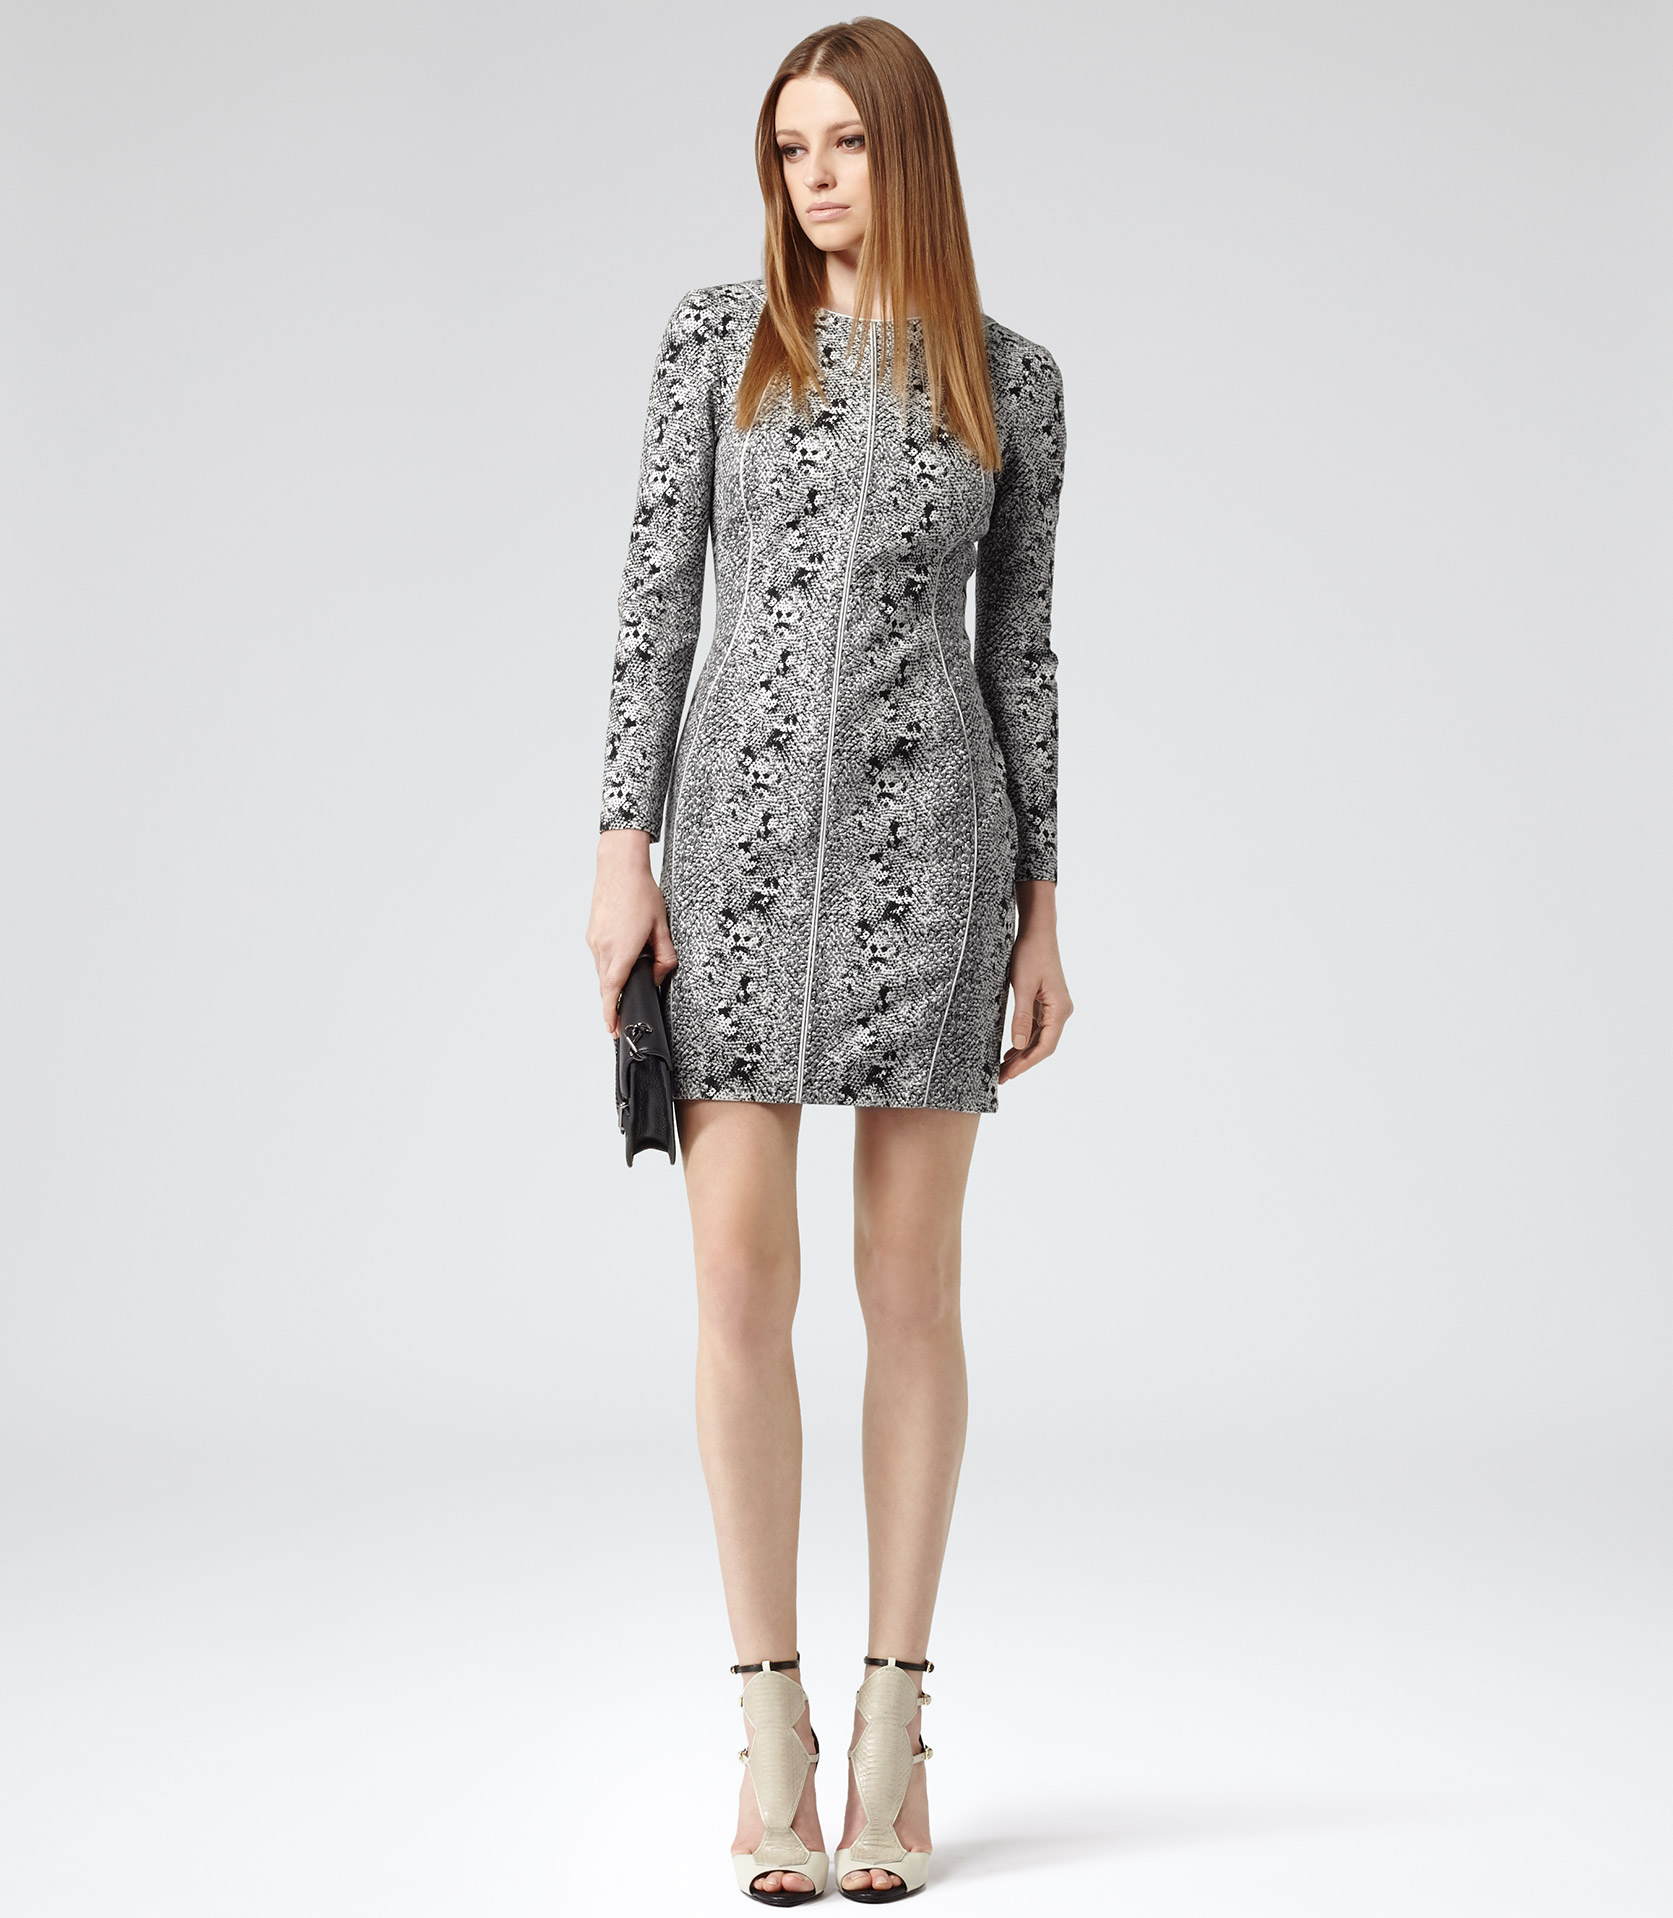 Lyst - Reiss Fion Snake Print Dress In Gray